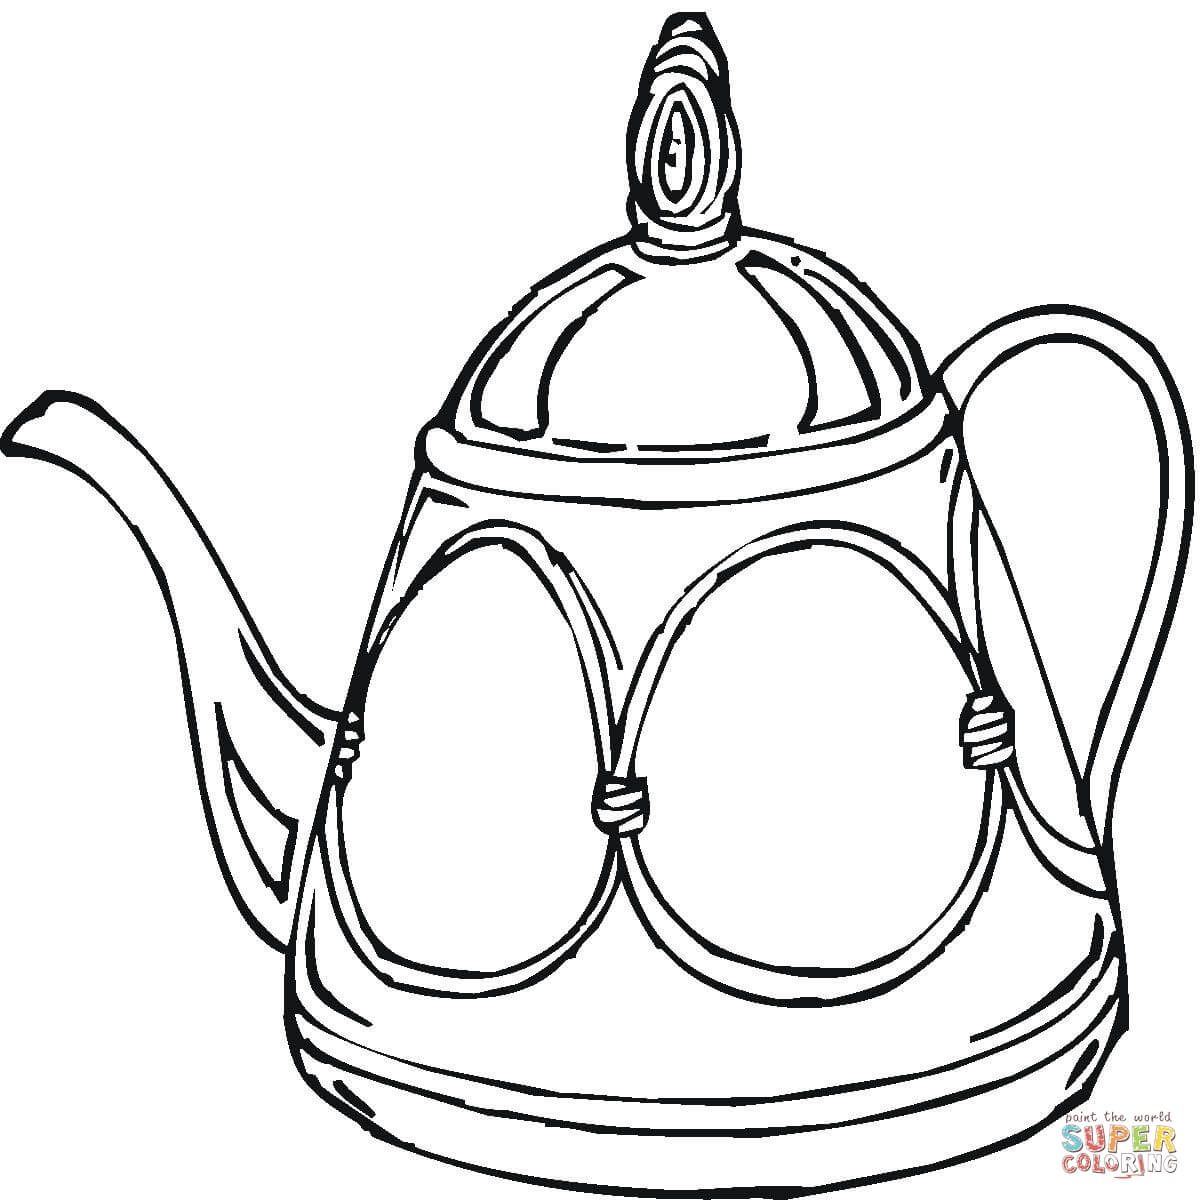 Teapot Coloring Page Free Printable Coloring Pages Coloring Pages Free Printable Coloring Pages Printable Coloring Pages